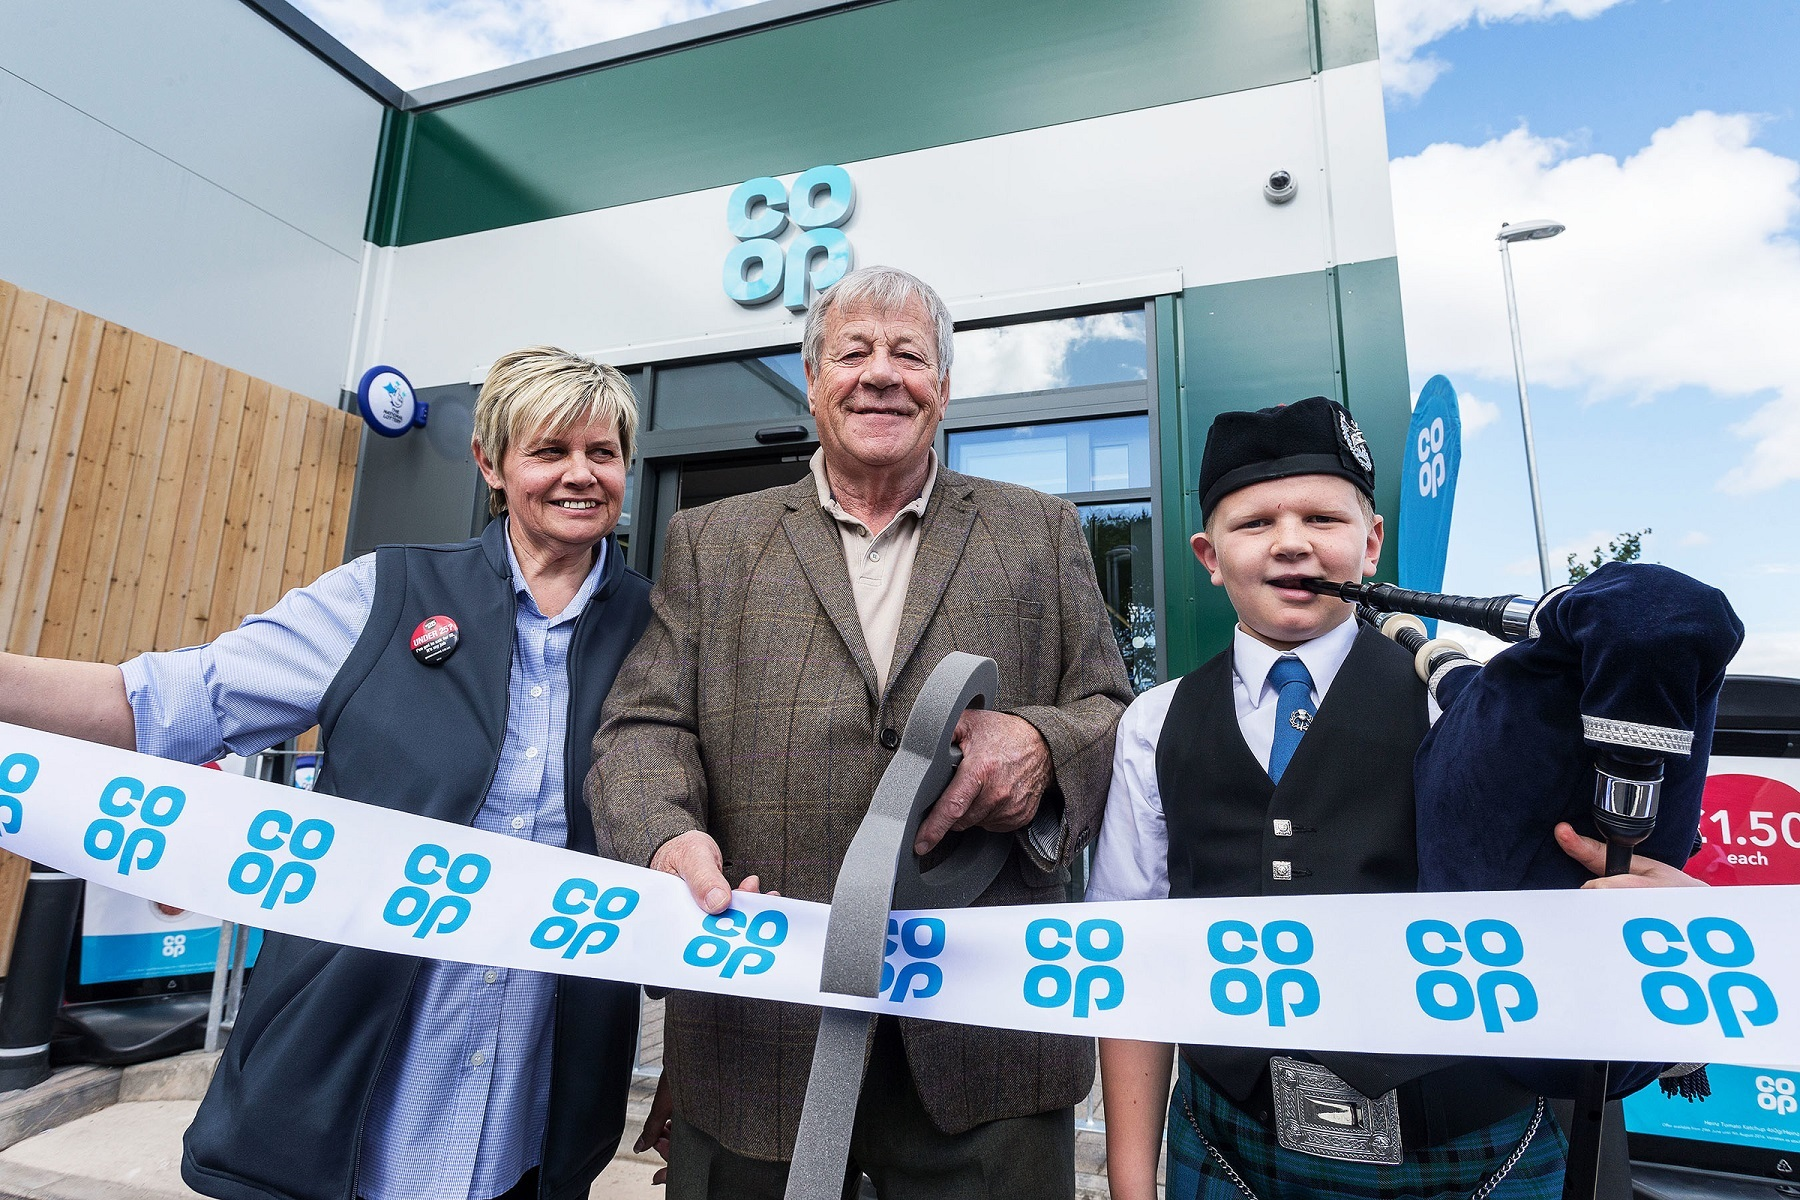 Store manager Sharon Cossans, local historian Fred Stewart and young piper, Tain Robbie, from Newtonhill Pipe Band cut the ribbon at the new Co-op store in Leathan Fields.